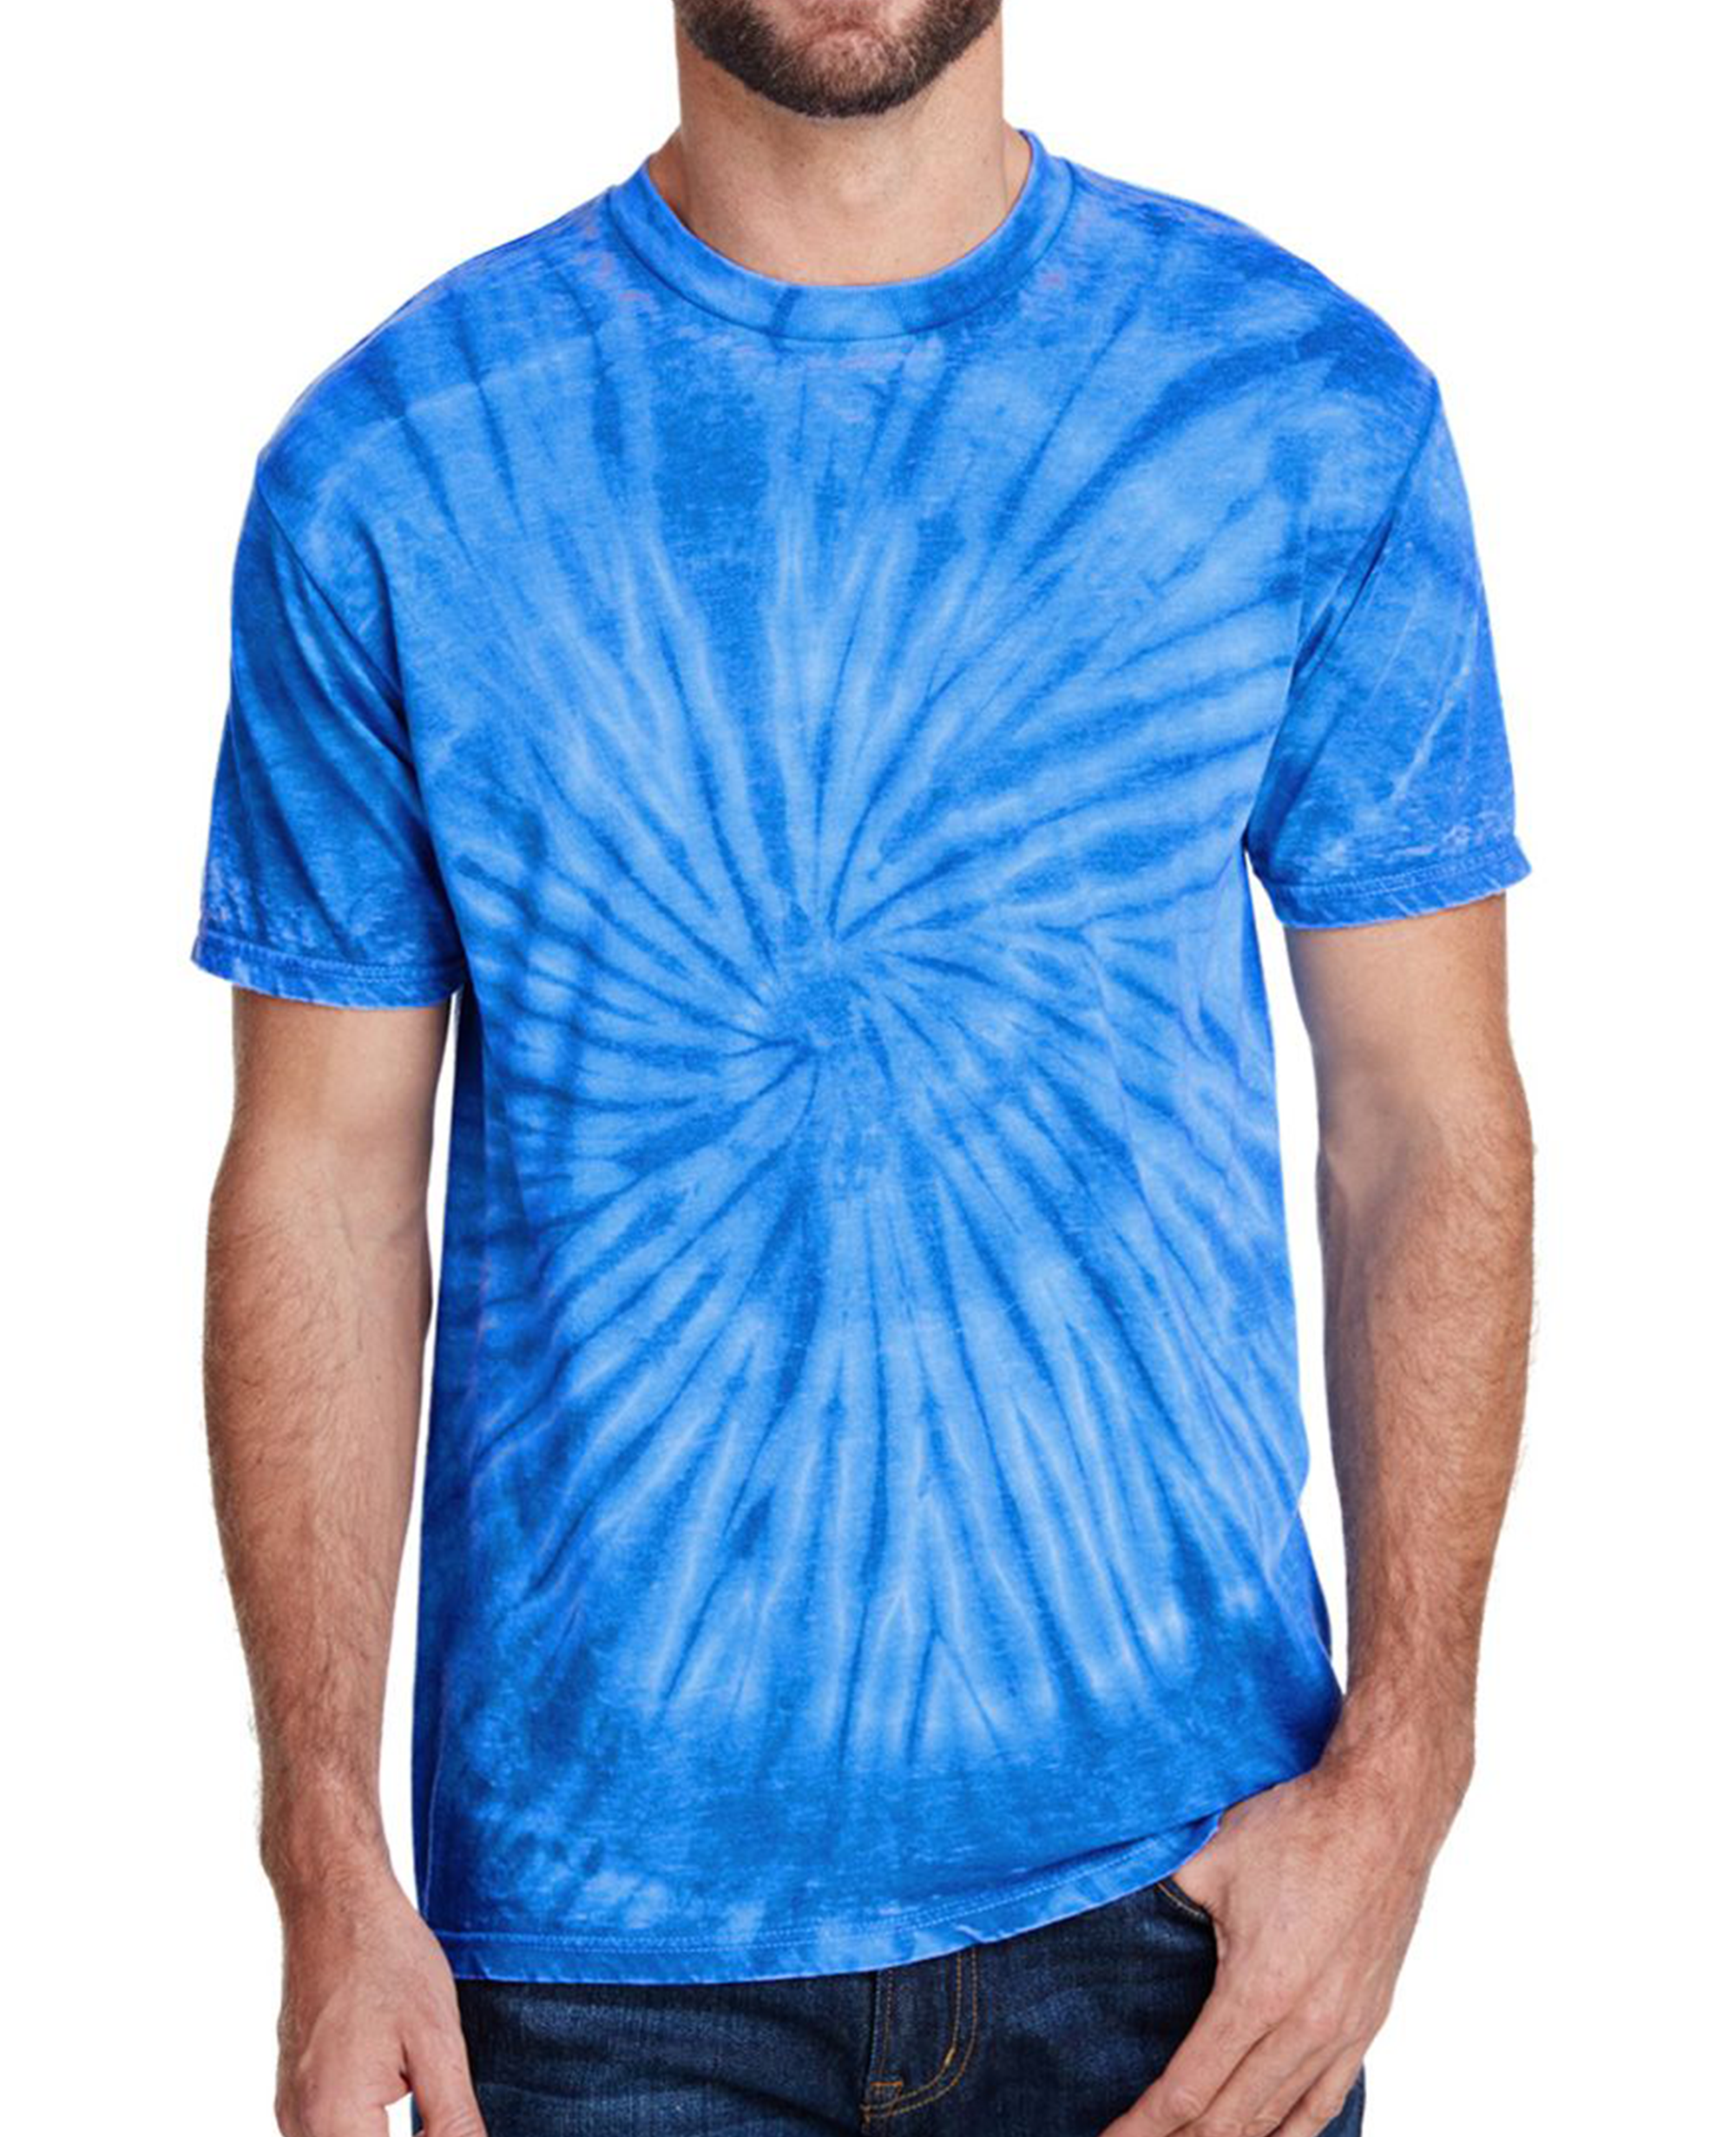 Burnout Festival Tie Dye T-shirt in Royal - T-Shirts - Tie-Dye - BRANMA